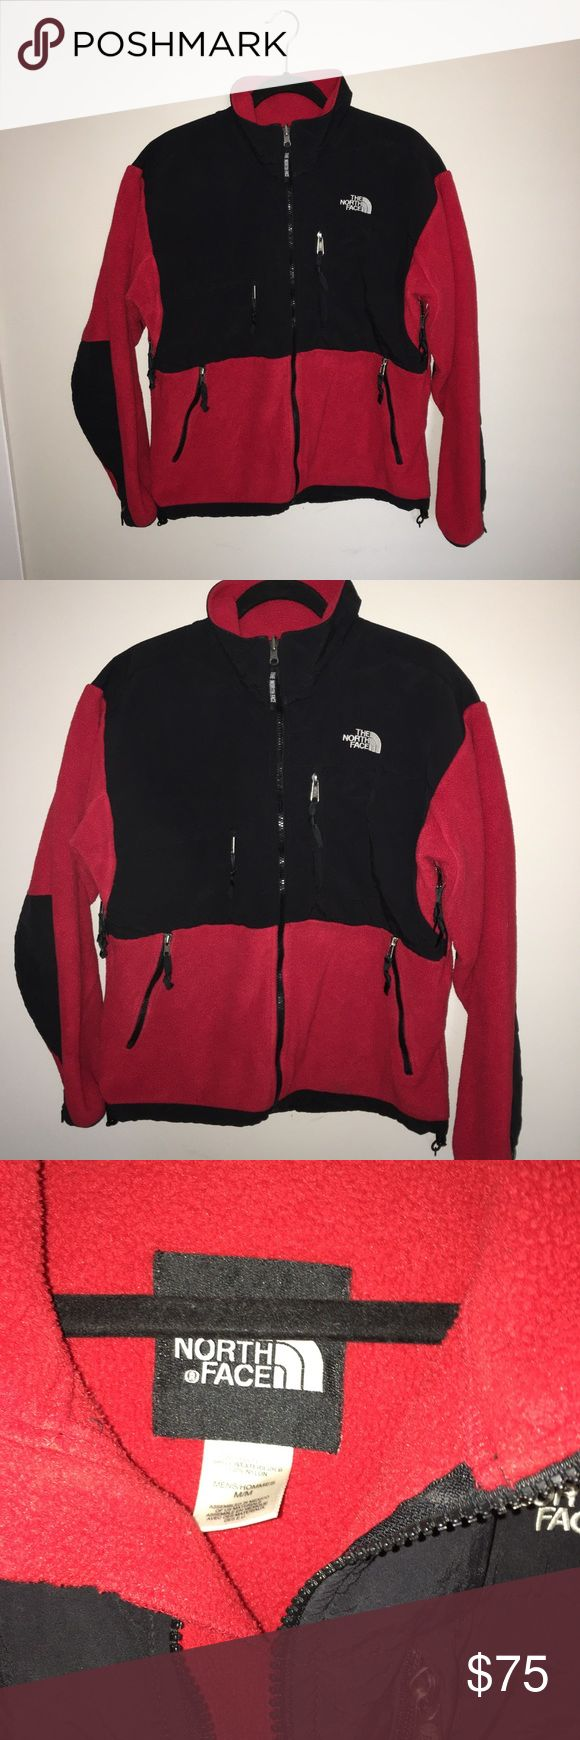 Red North Face Mens Jacket In Good Condition The North Face Jackets & Coats